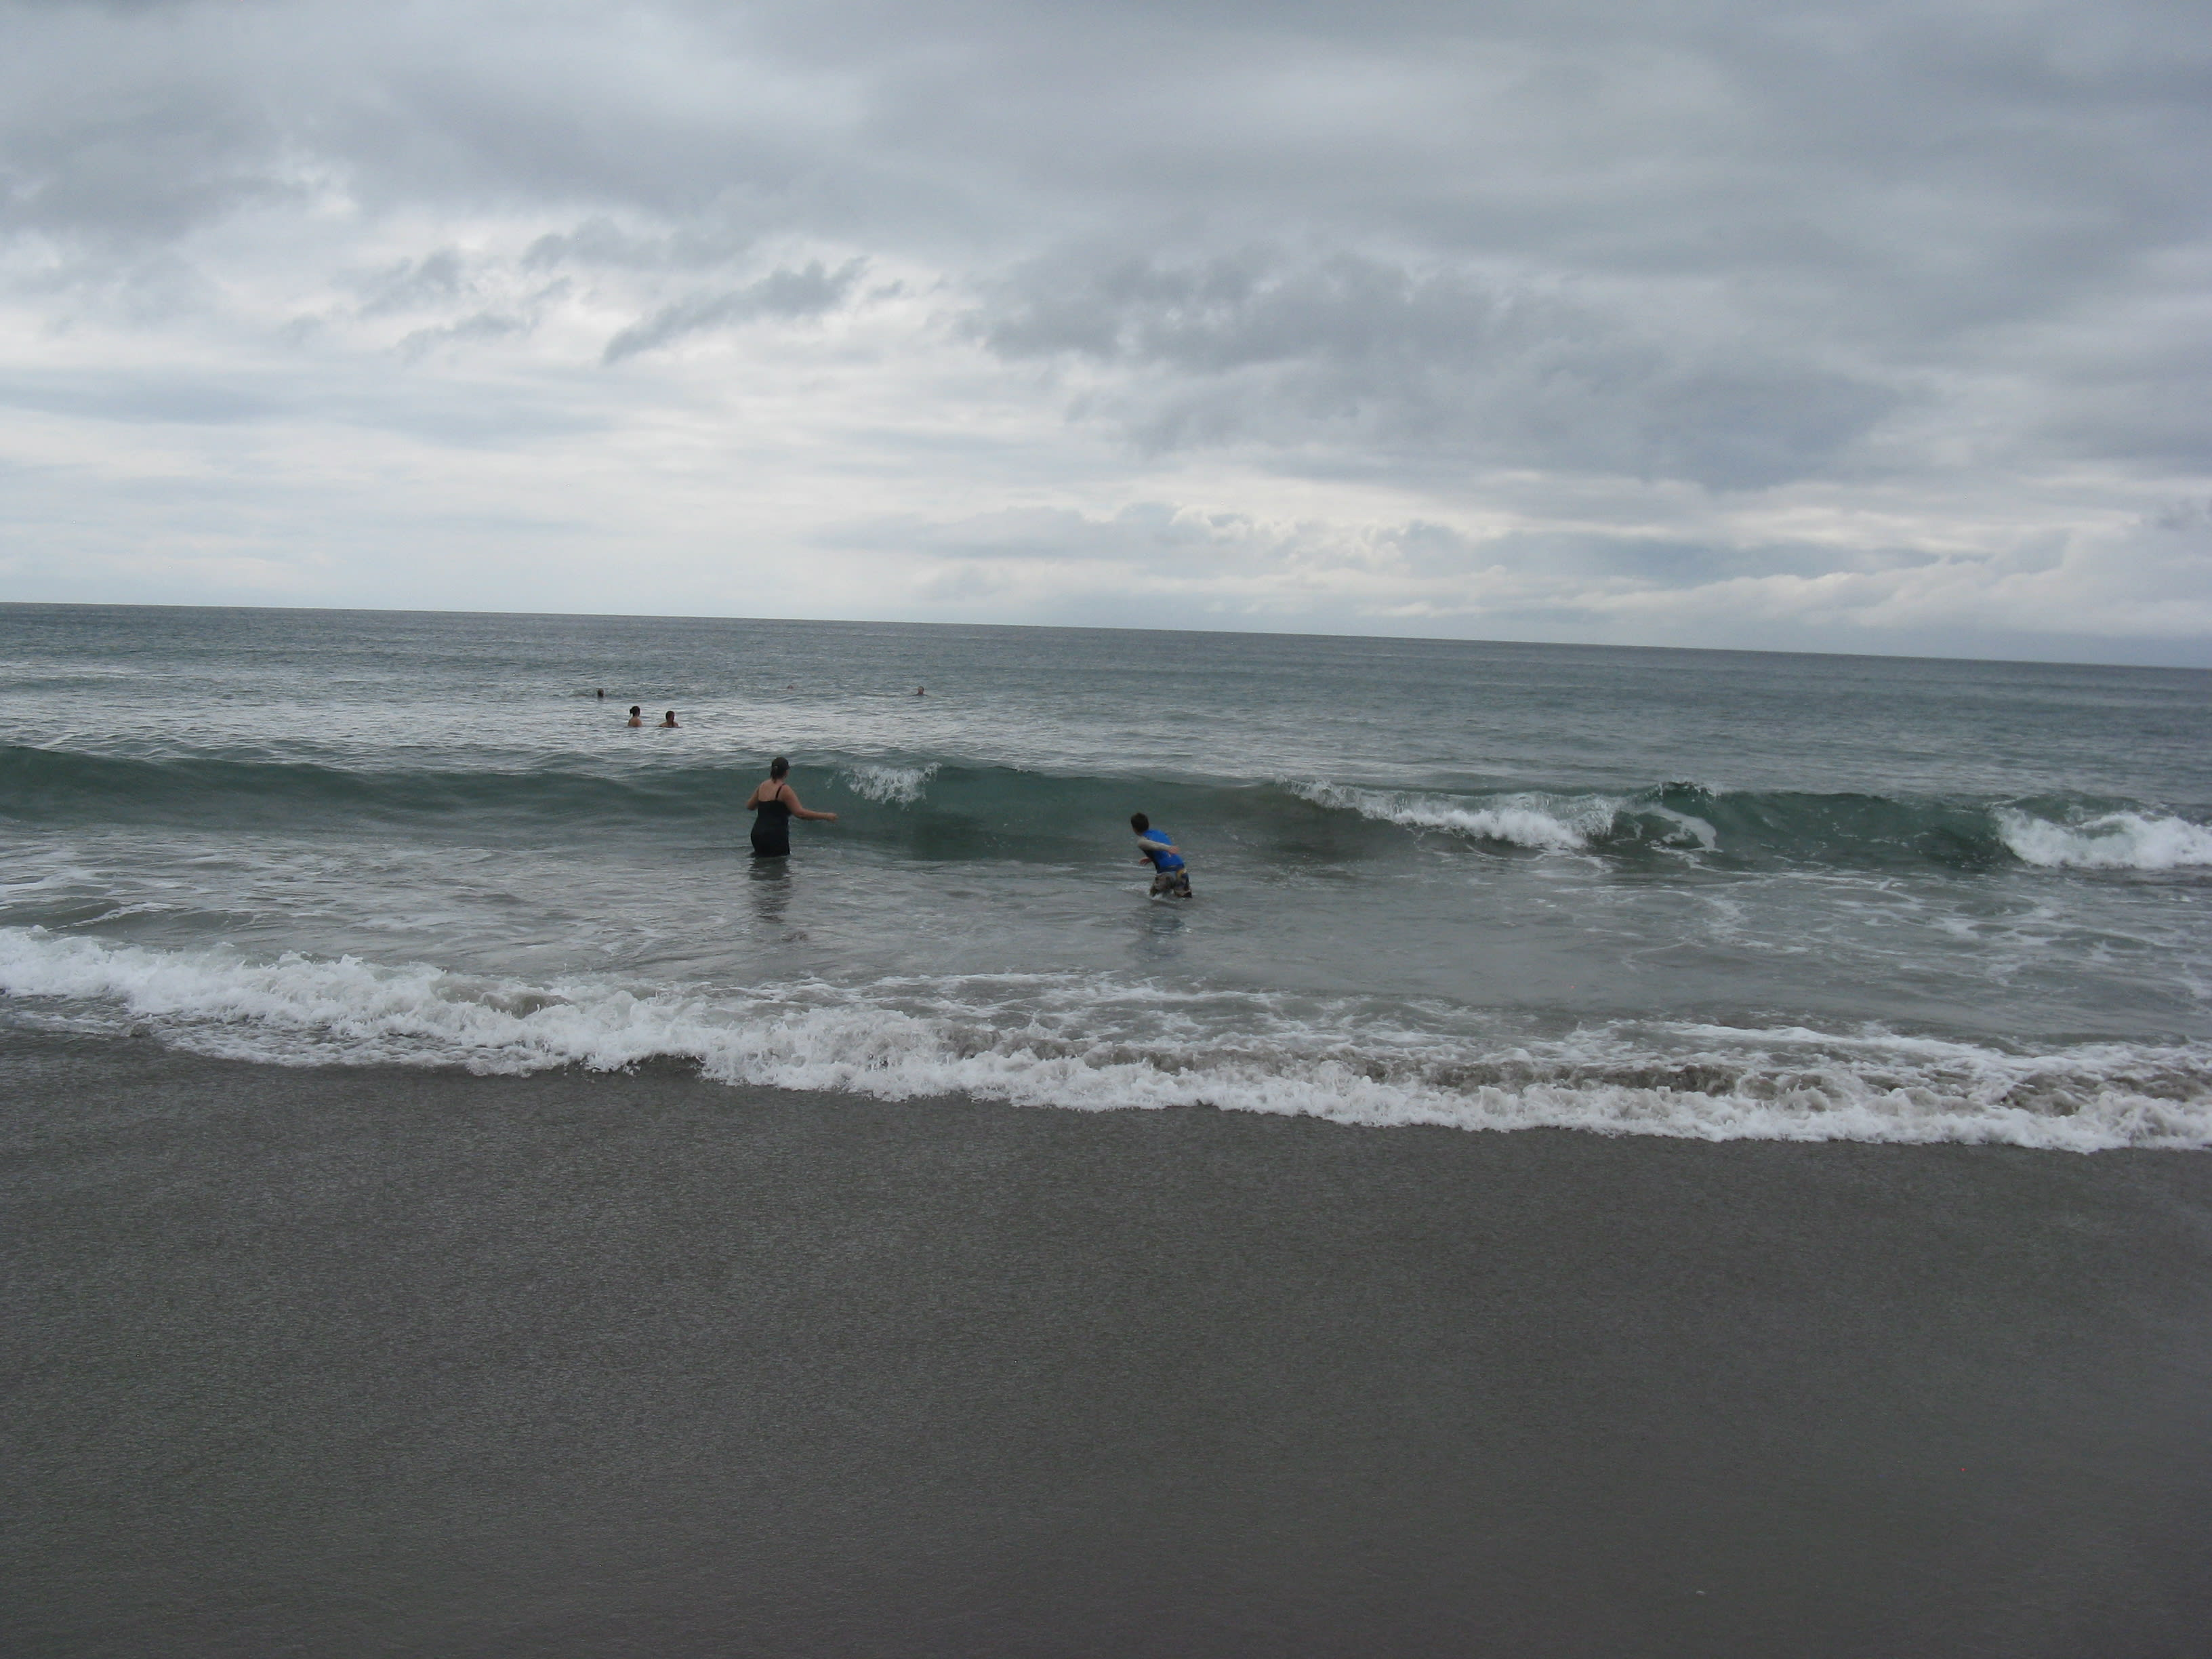 Karen and Lucas in the surf